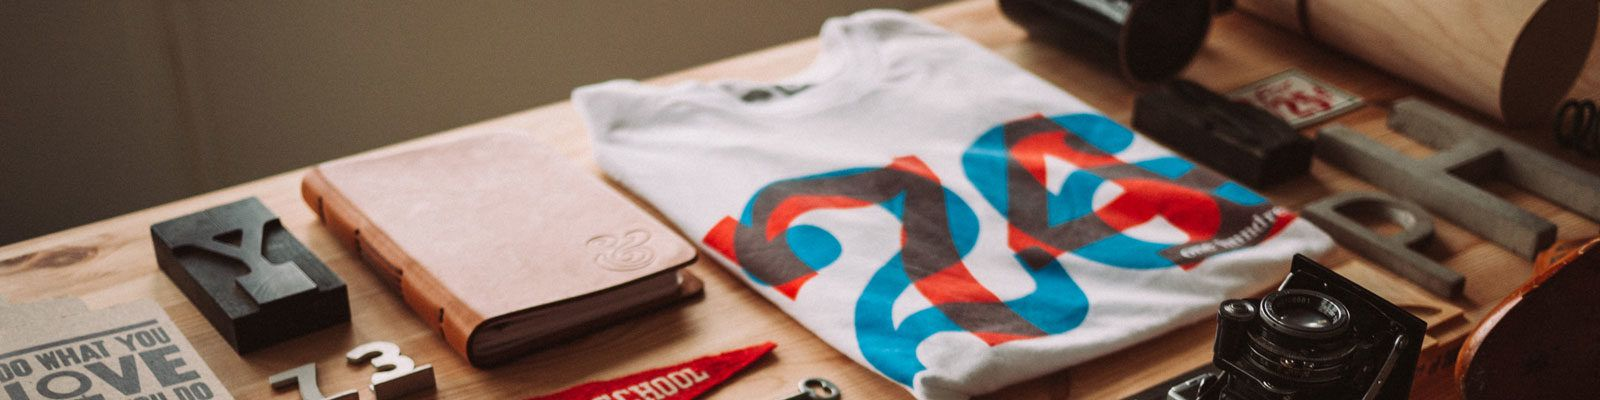 5 steps to starting your own T-Shirt company - Header Image